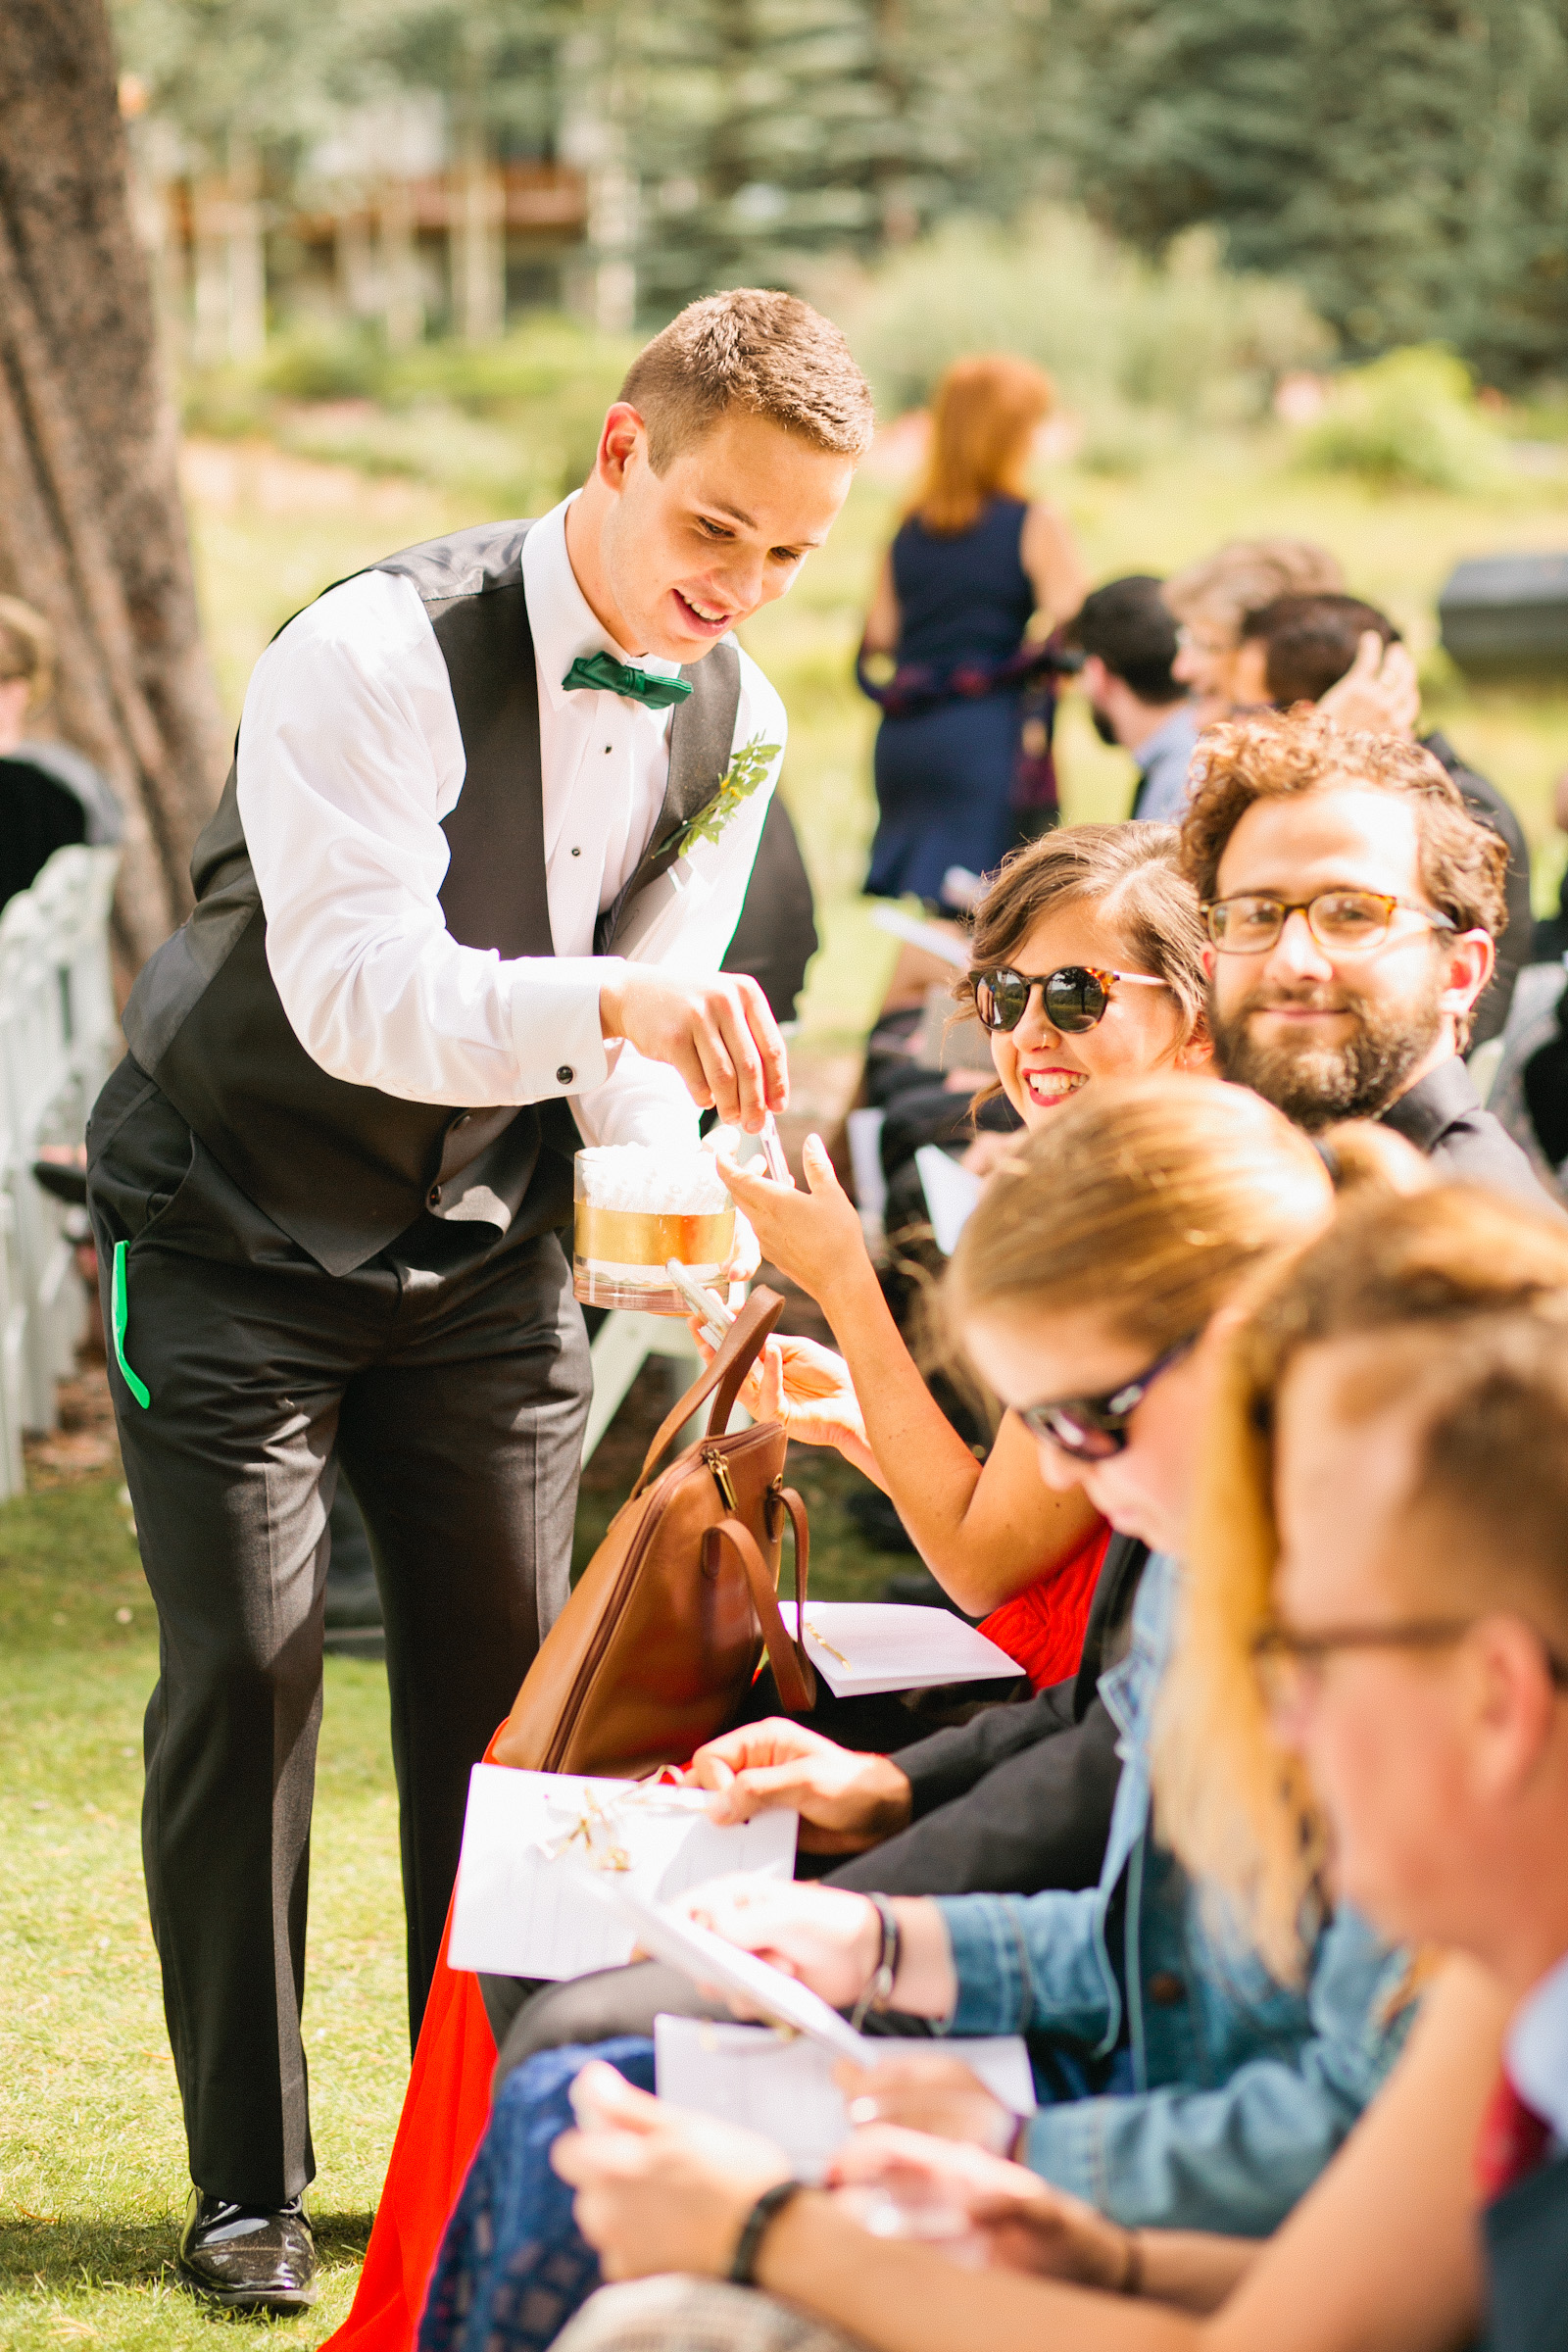 usher handing out bubbles at outdoor Vail mountain wedding